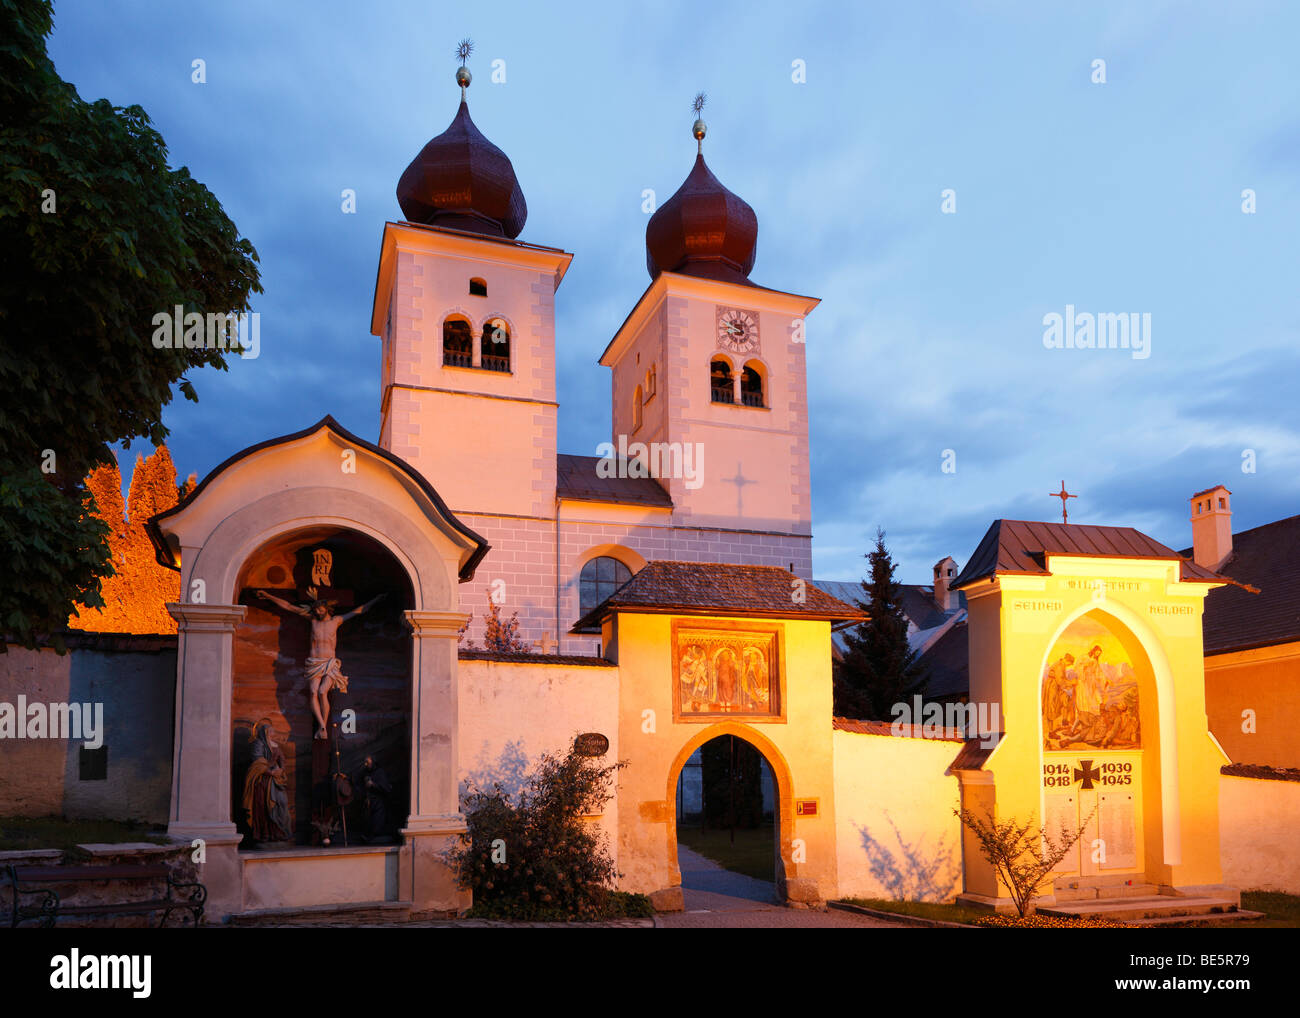 Church Christus Salvator und Allerheiligen, Christ Salvator and All Saints, Millstatt, Carinthia, Austria, Europe - Stock Image